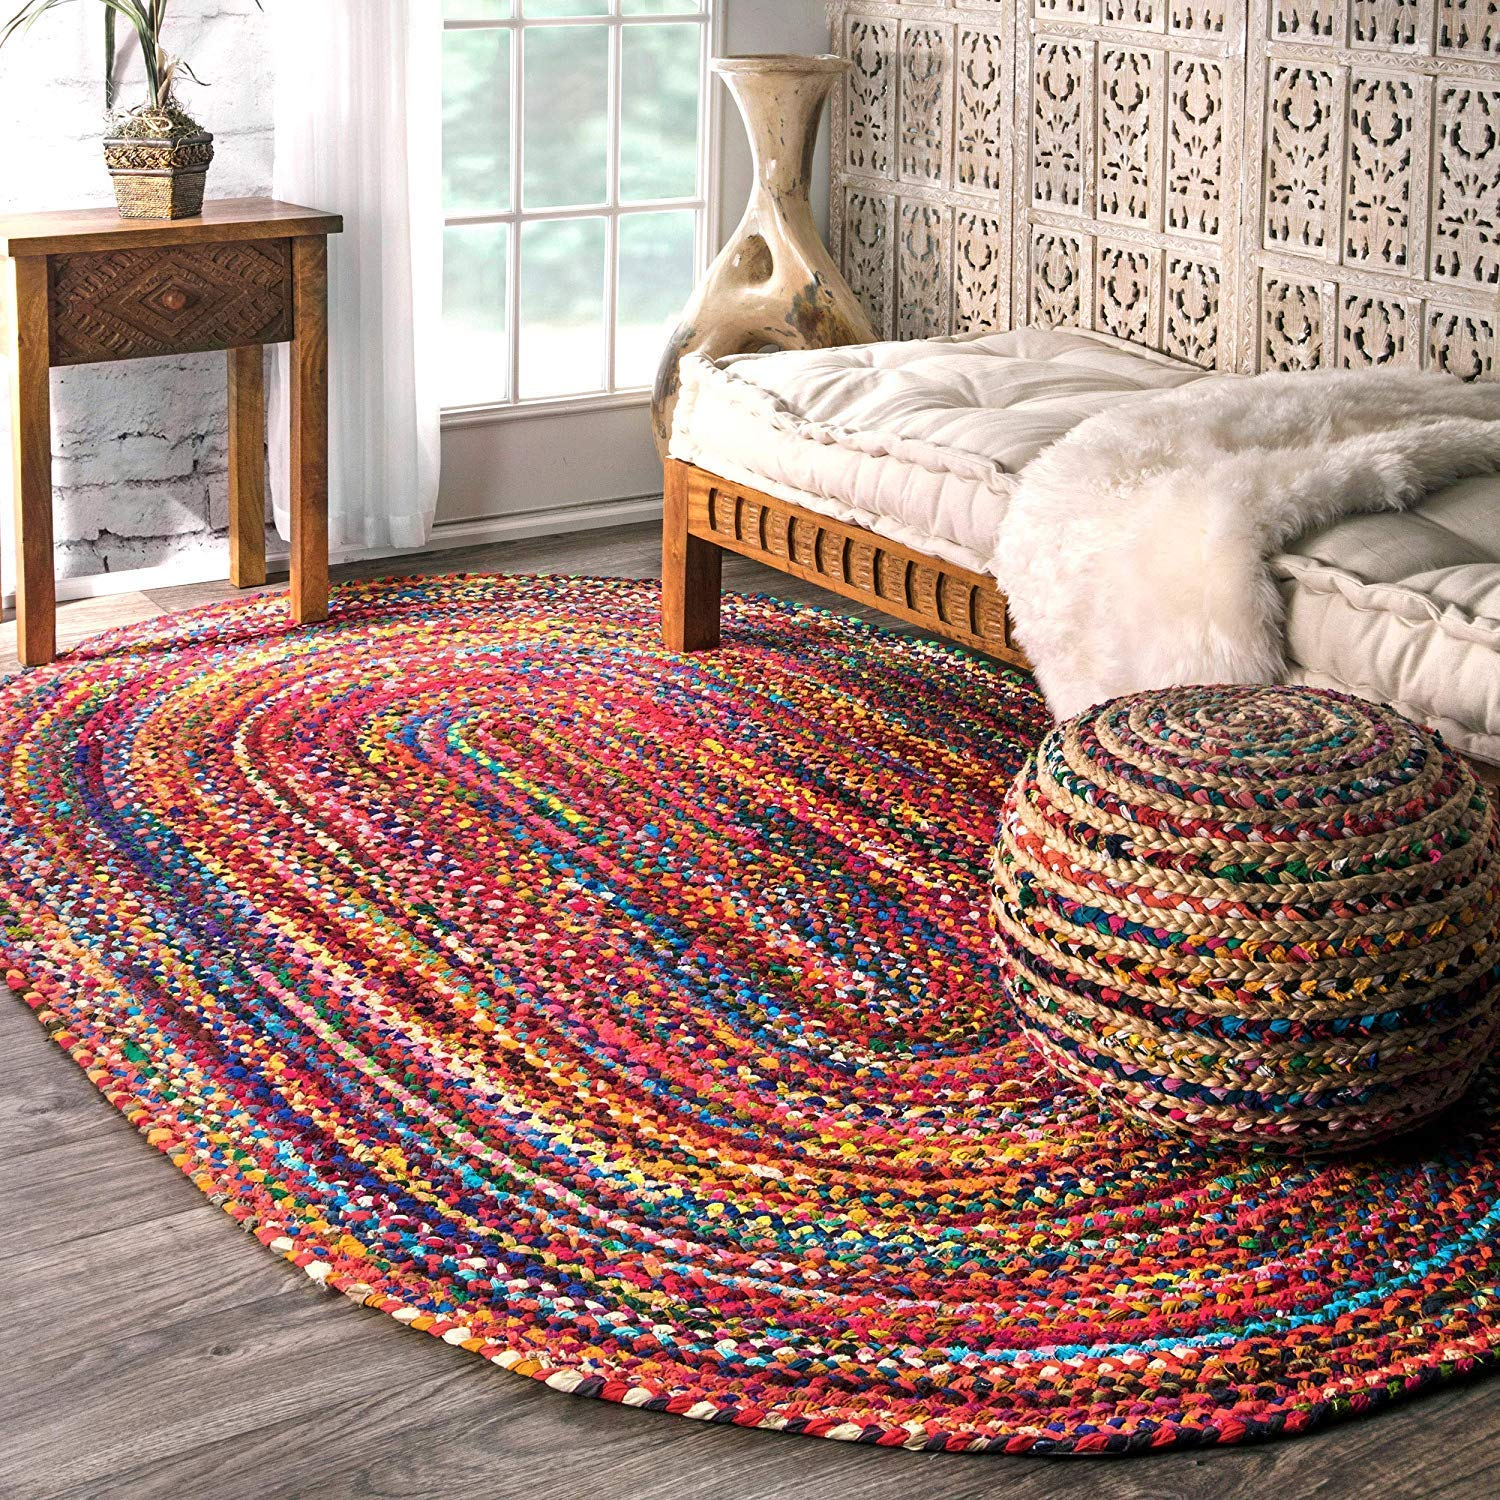 Cotton Chindi Oval Carpets Braided Area Rugs Round Rug